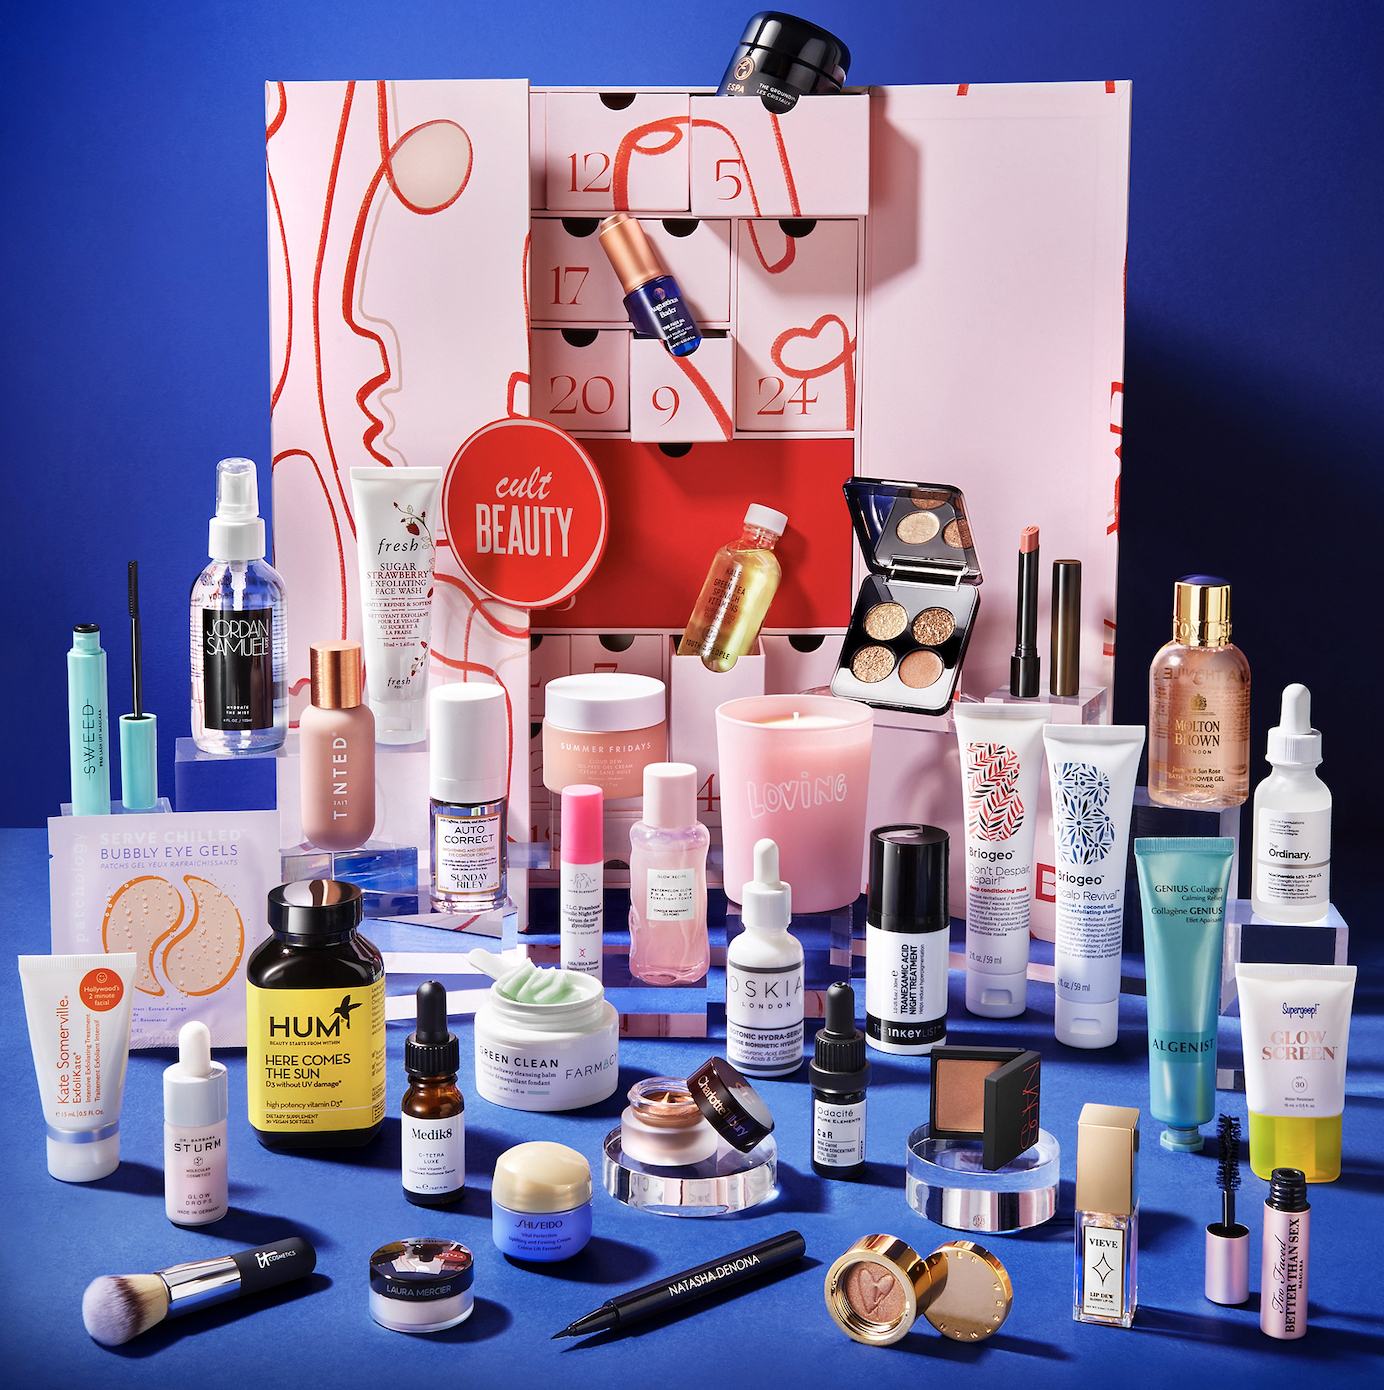 Cult Beauty to donate £40,000 to Beauty Backed Trust